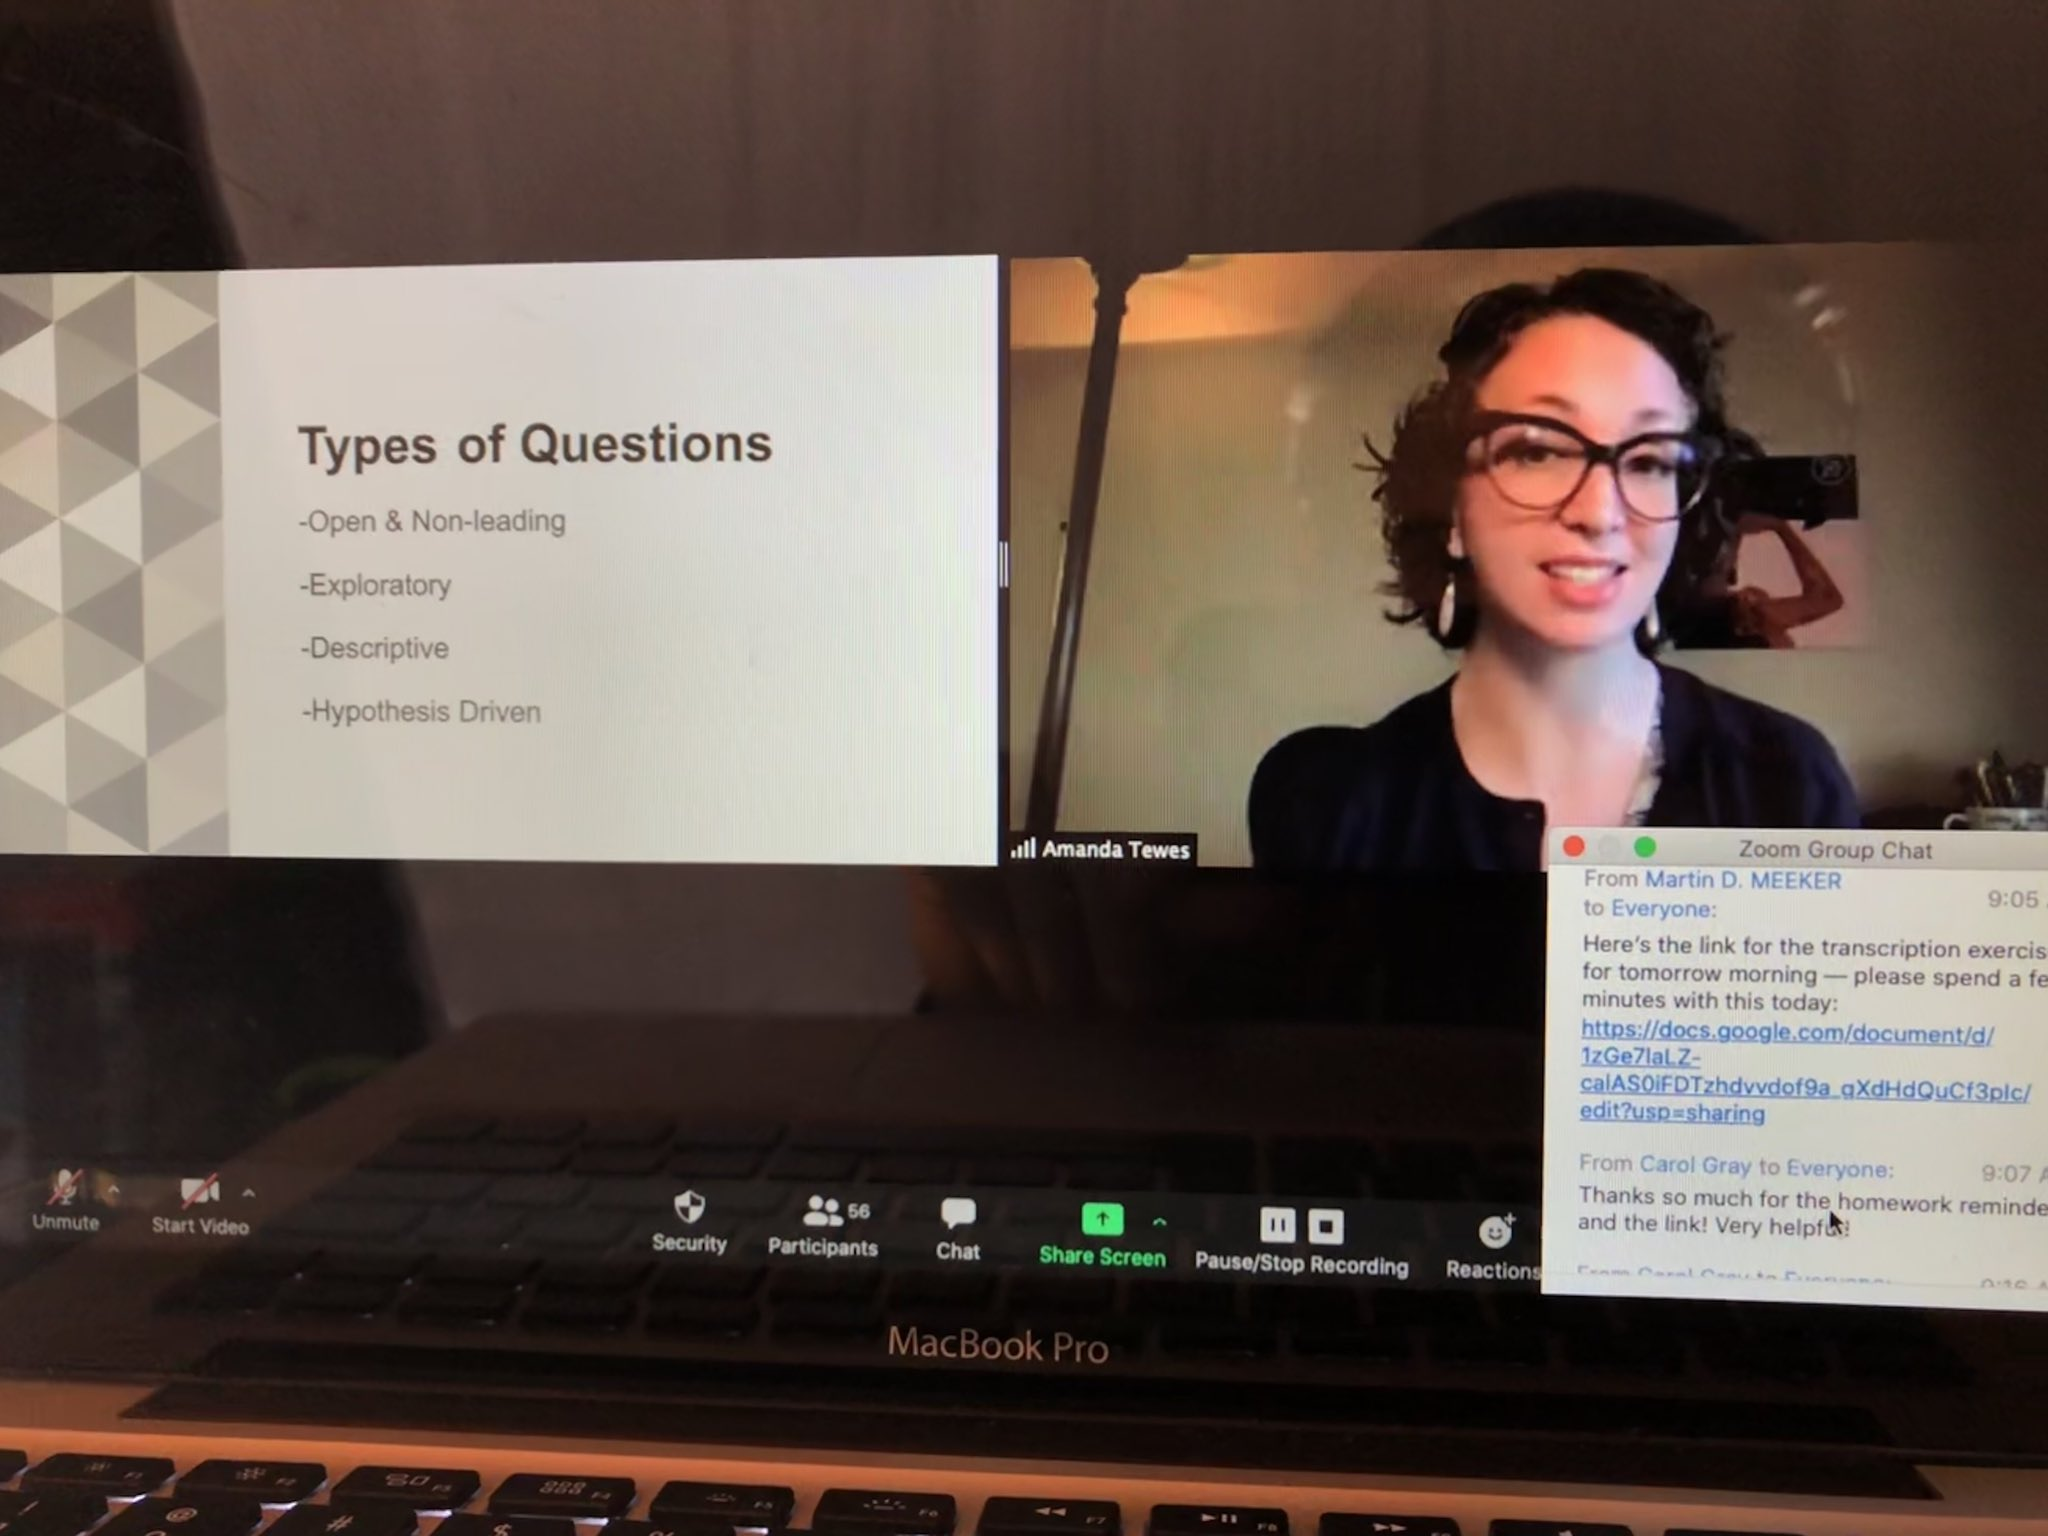 Amanda Tewes teaches online